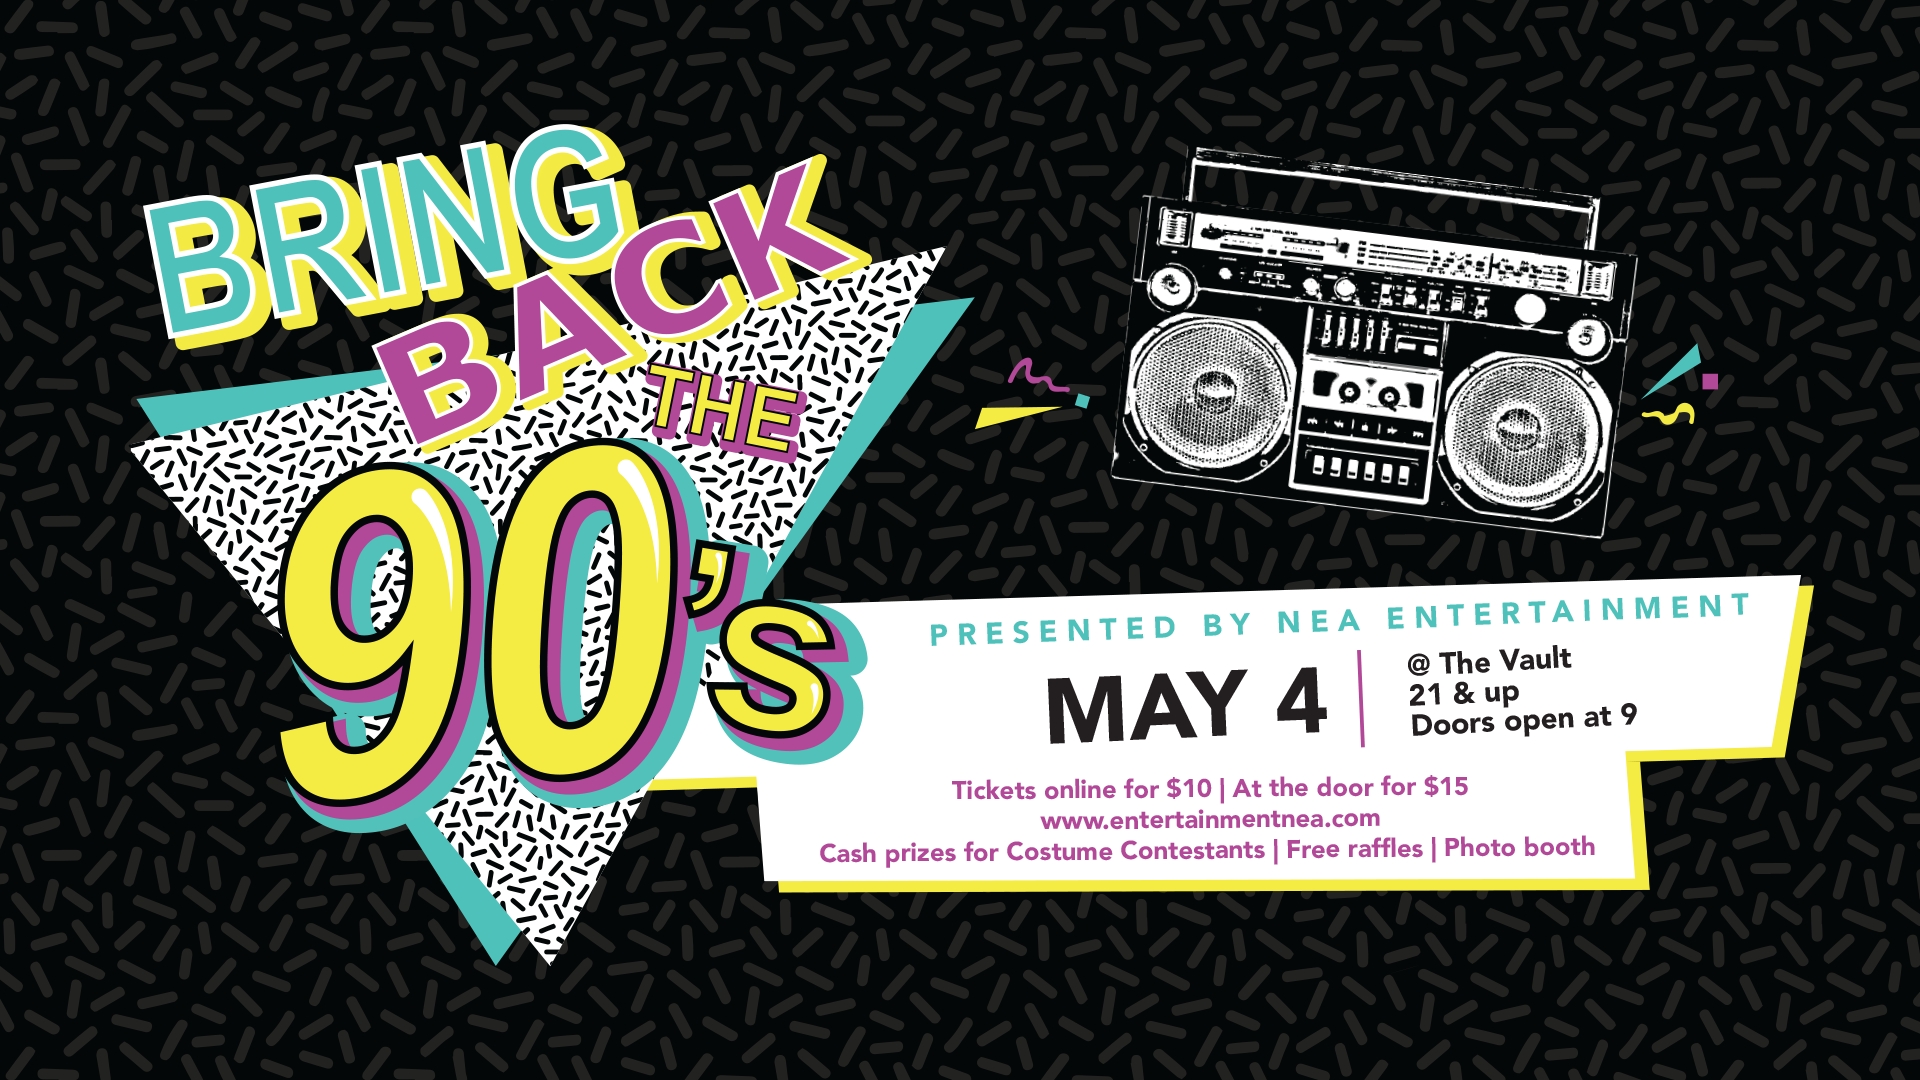 Bring Back the 90's Party - NEA Entertainment